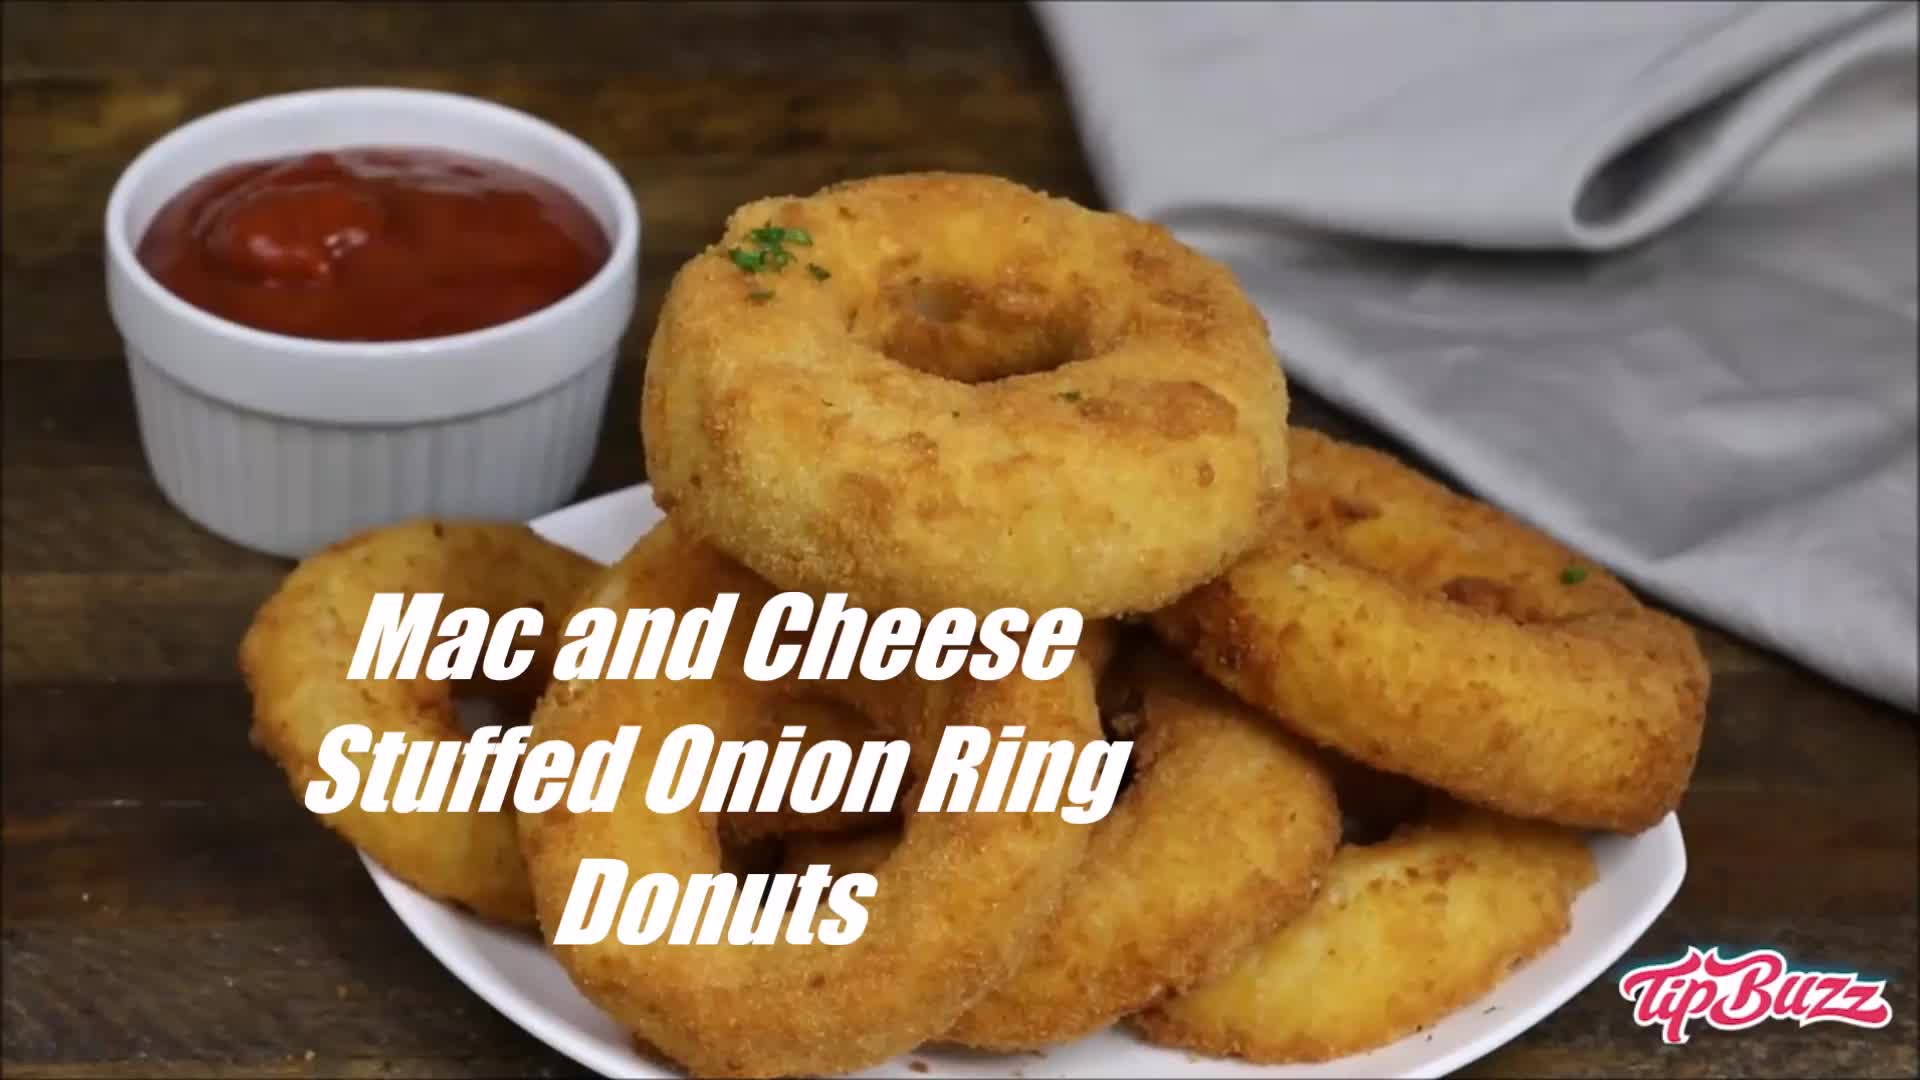 Mac and Cheese Stuffed Onion Ring Donuts